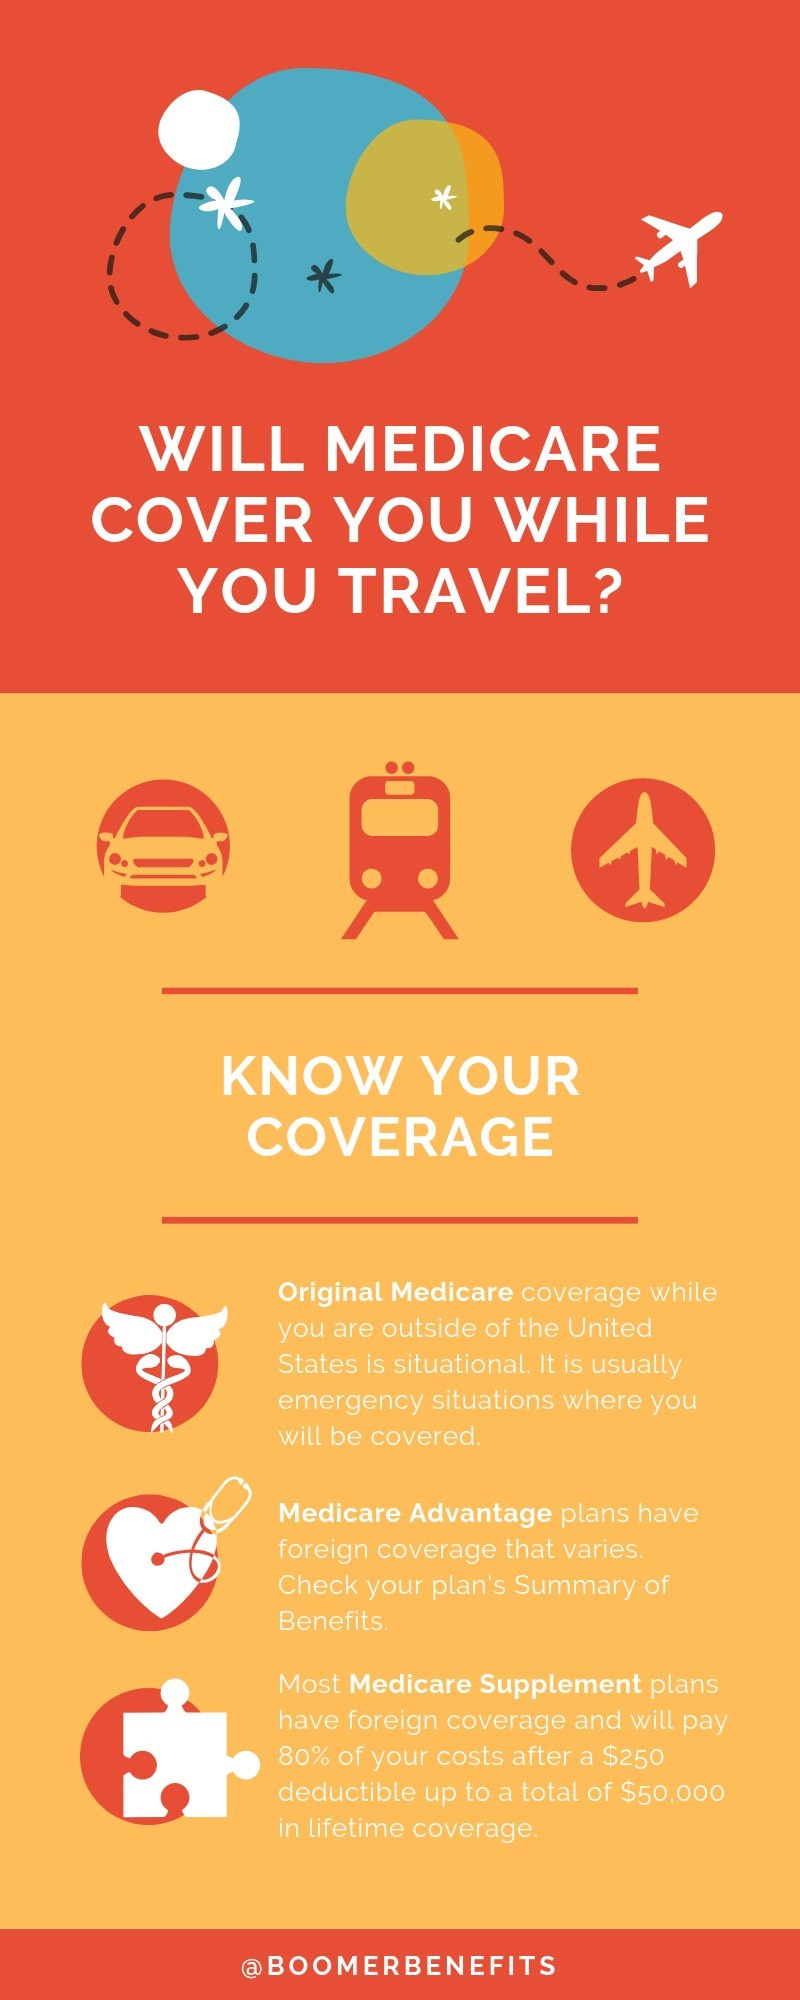 Will Medicare cover you while you travel? Here's all you need to know about traveling outside the USA with Medicare.  #medicare #seniortravel #medicalinsurance #travel #infographic